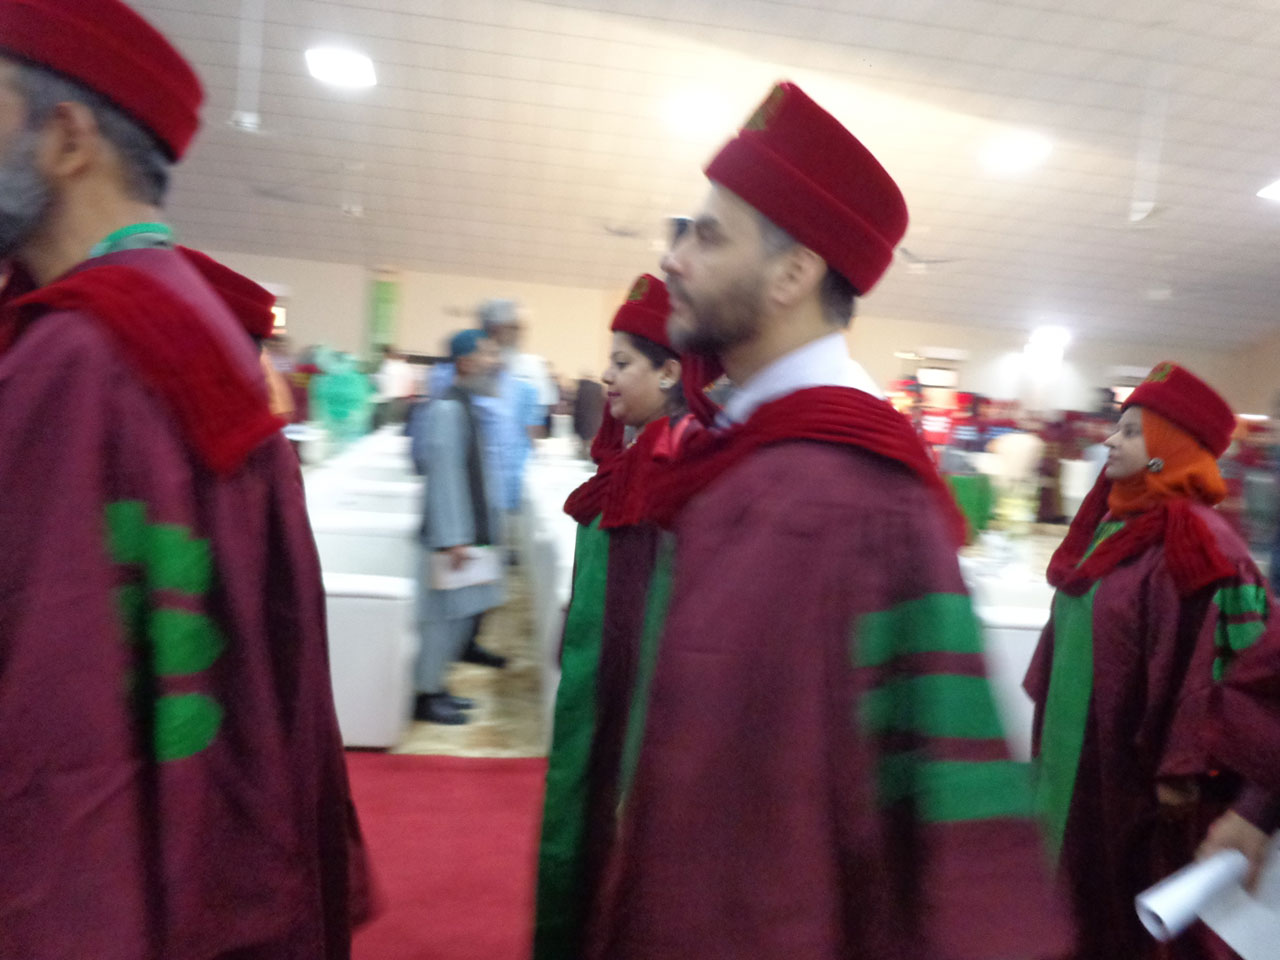 Dr Kiran A. Rehman is in the Faculty procession